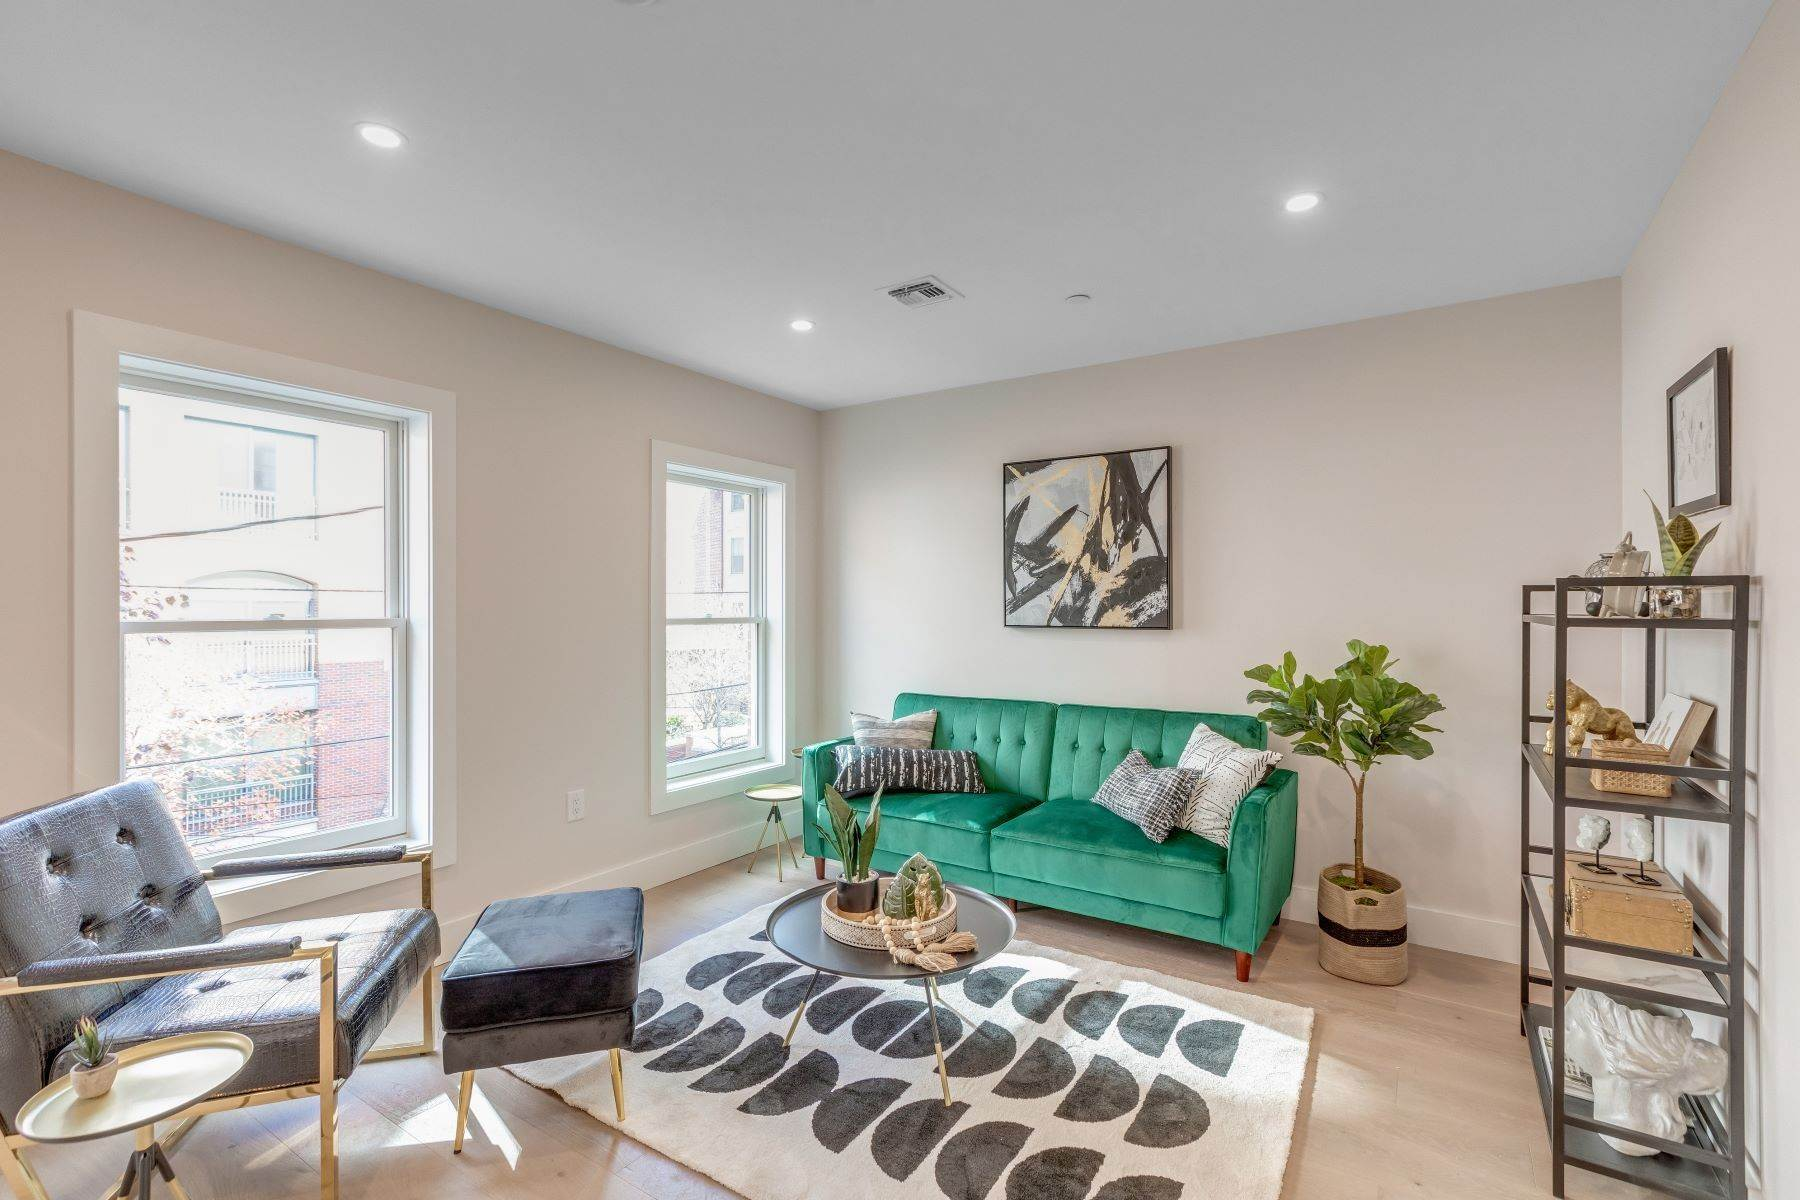 Condominiums for Sale at Welcome home to 223 Montgomery street condos. A three unit boutique project. 223 Montgomery Street, Unit 2 Jersey City, New Jersey 07302 United States